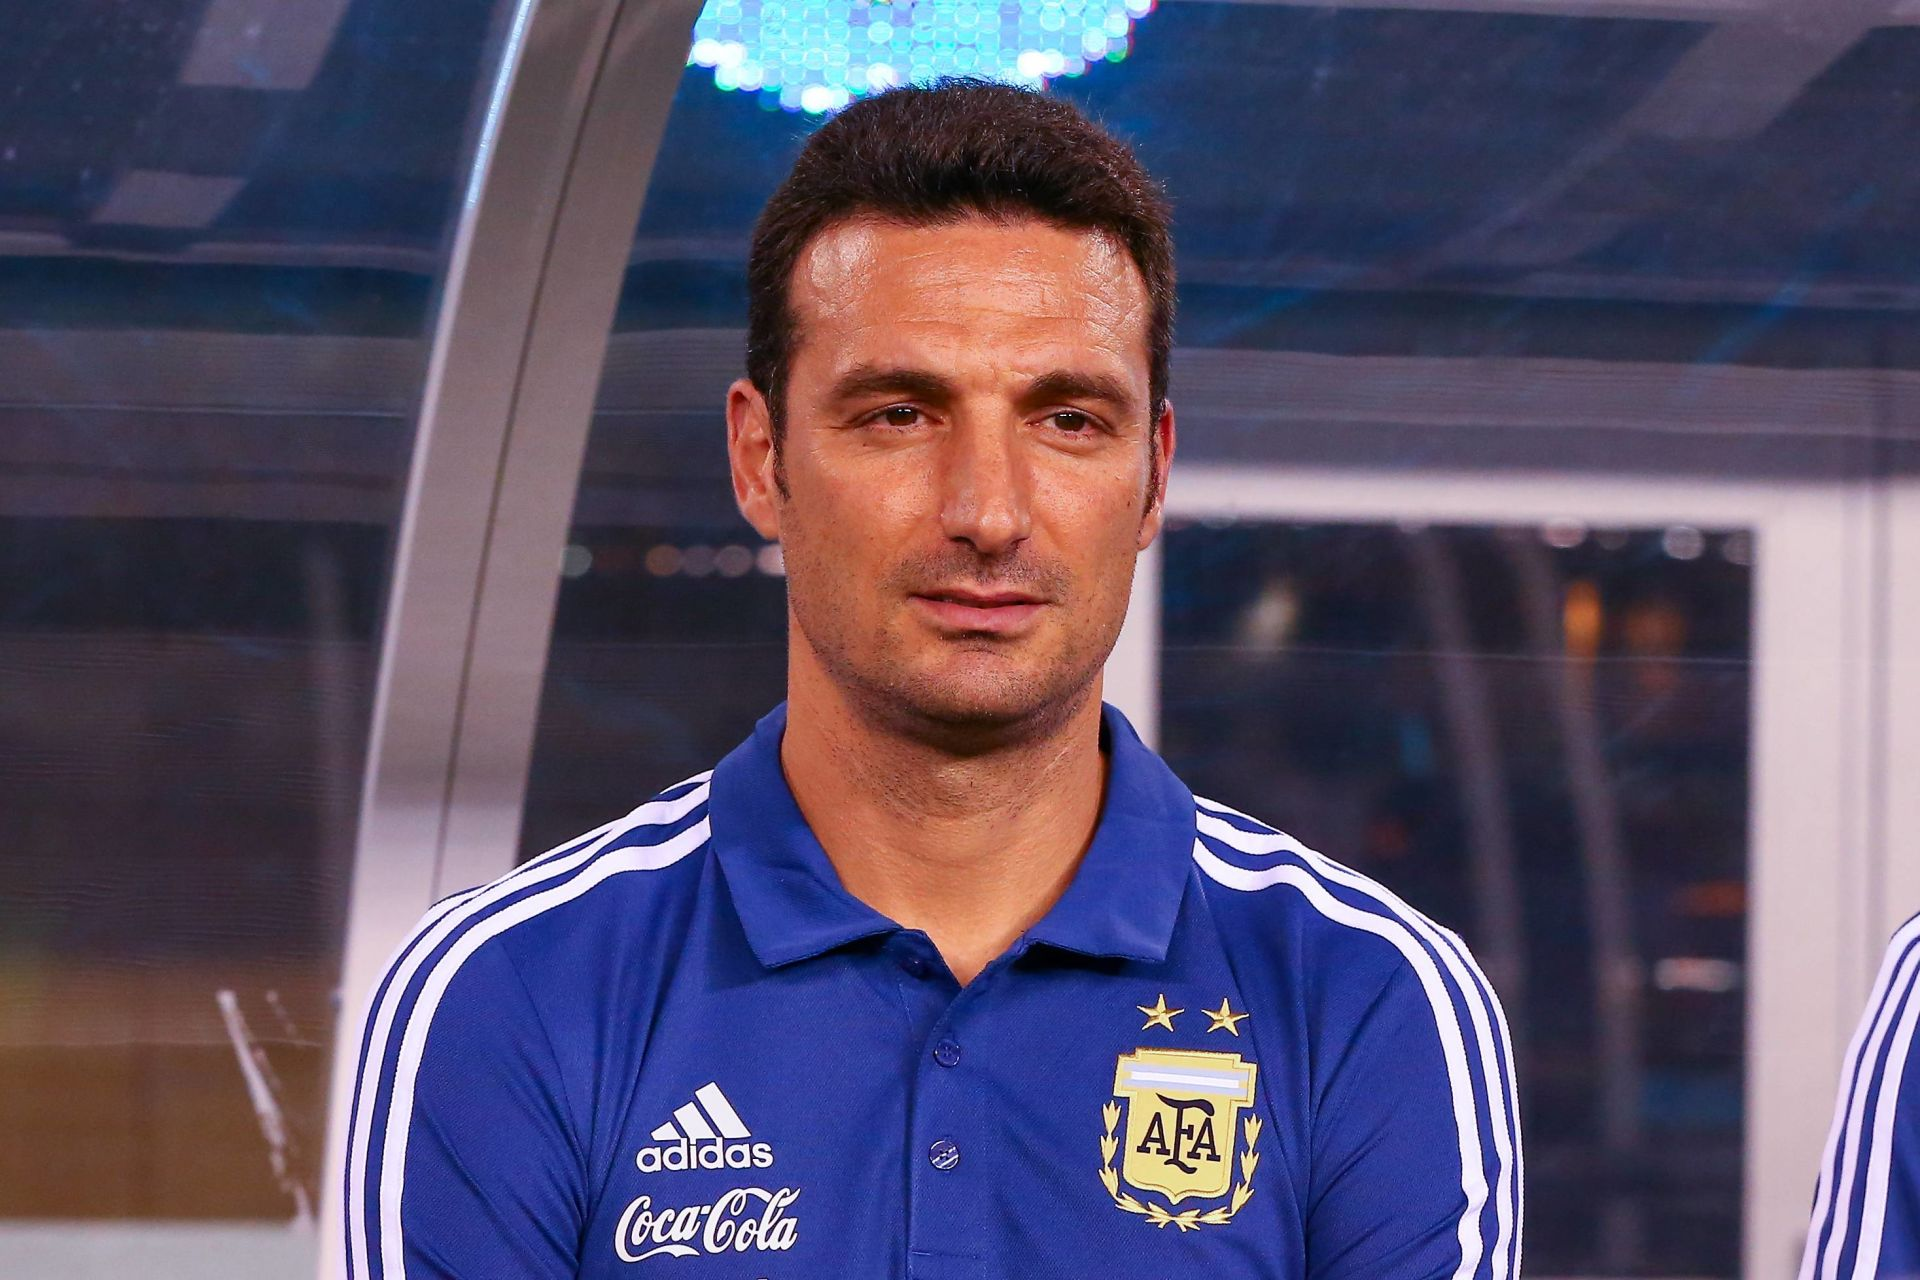 September 11, 2018 - East Rutherford, NJ, U.S. - EAST RUTHERFORD, NJ - SEPTEMBER 11: Argentina interim head coach Lionel Scaloni prior to the International Friendly Soccer game between Argentina and Colombia on September 11, 2018 at MetLife Stadium in East Rutherford, NJ. (Photo by Rich Graessle/Icon Sportswire) (Credit Image: © Rich Graessle/Icon SMI via ZUMA Press) FOT. ZUMA / NEWSPIX.PL POLAND ONLY !!! --- Newspix.pl *** Local Caption *** www.newspix.pl mail us: info@newspix.pl call us: 0048 022 23 22 222 --- Polish Picture Agency by Ringier Axel Springer Poland